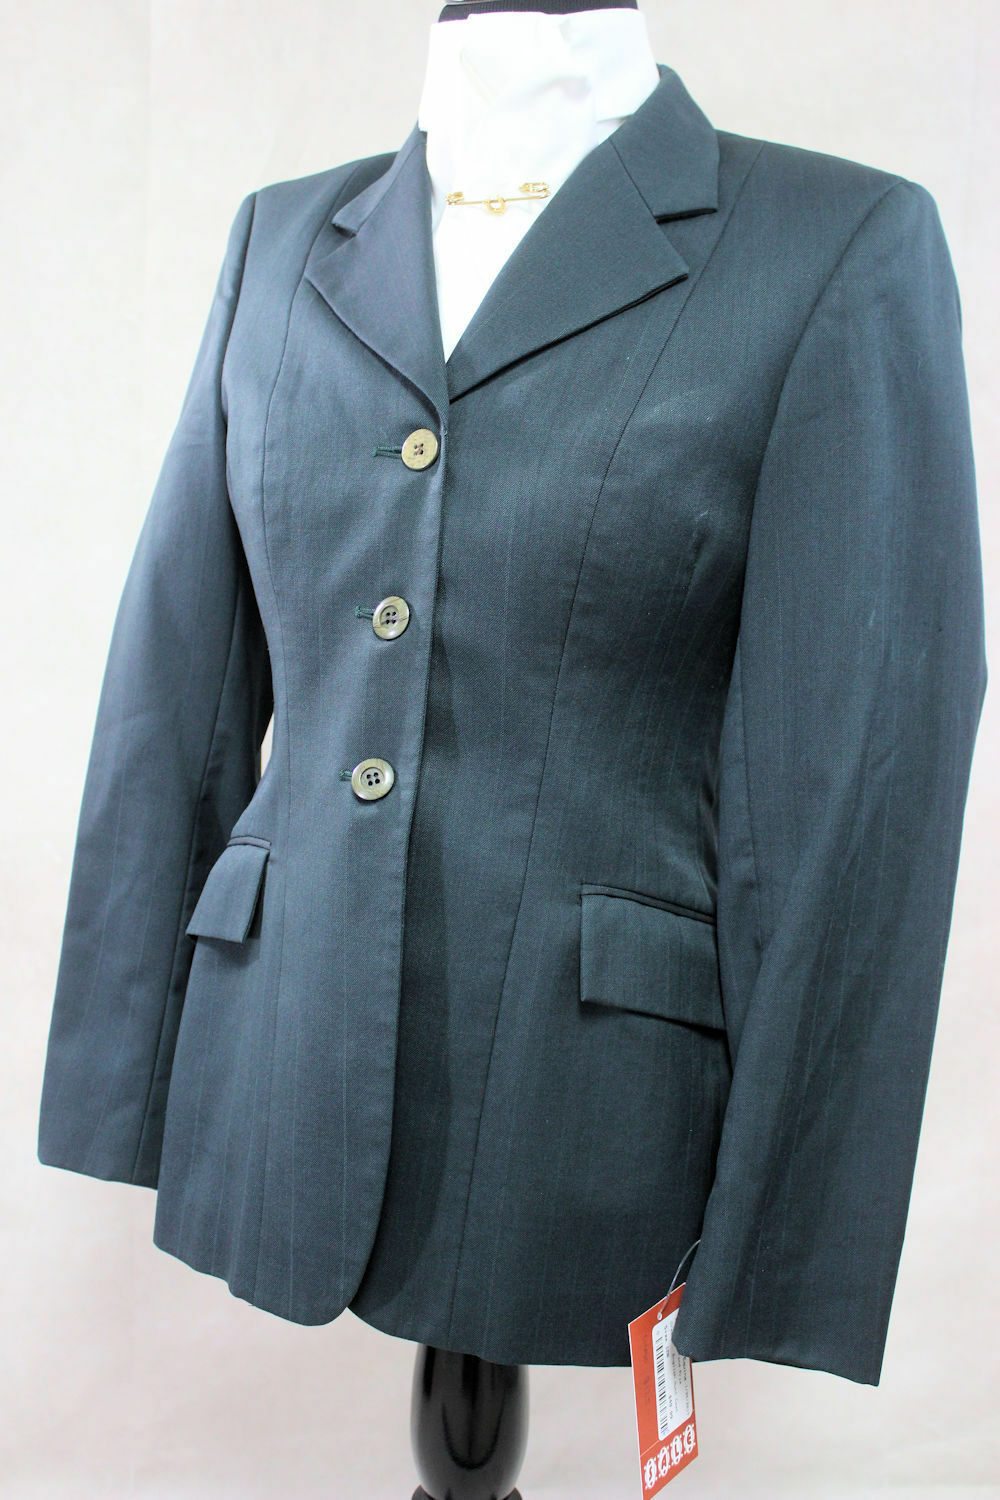 Grand Prix Hunter Green Ladies Show   Hunt Coat, Size  10R Ref  897-538